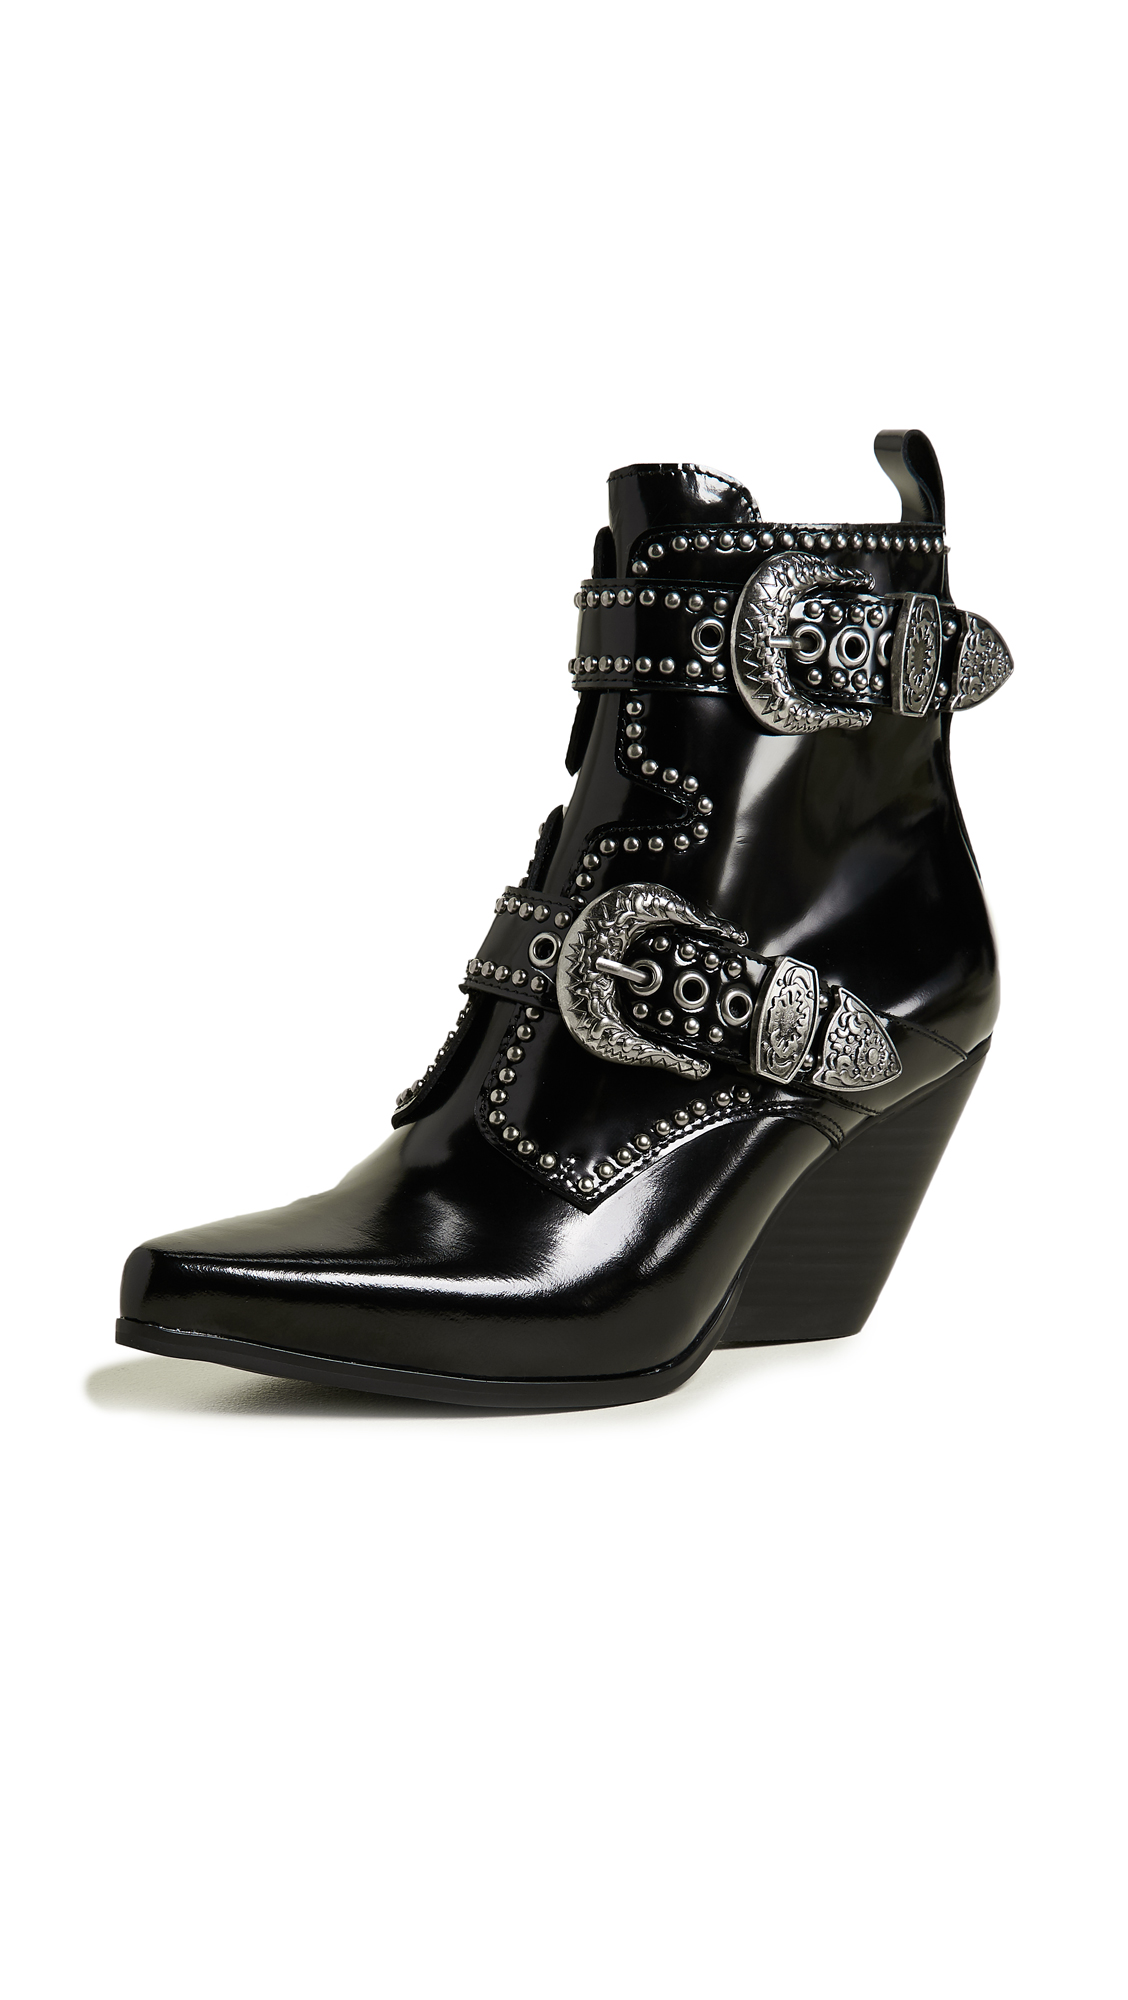 Jeffrey Campbell Welton Buckle Booties - Black Box